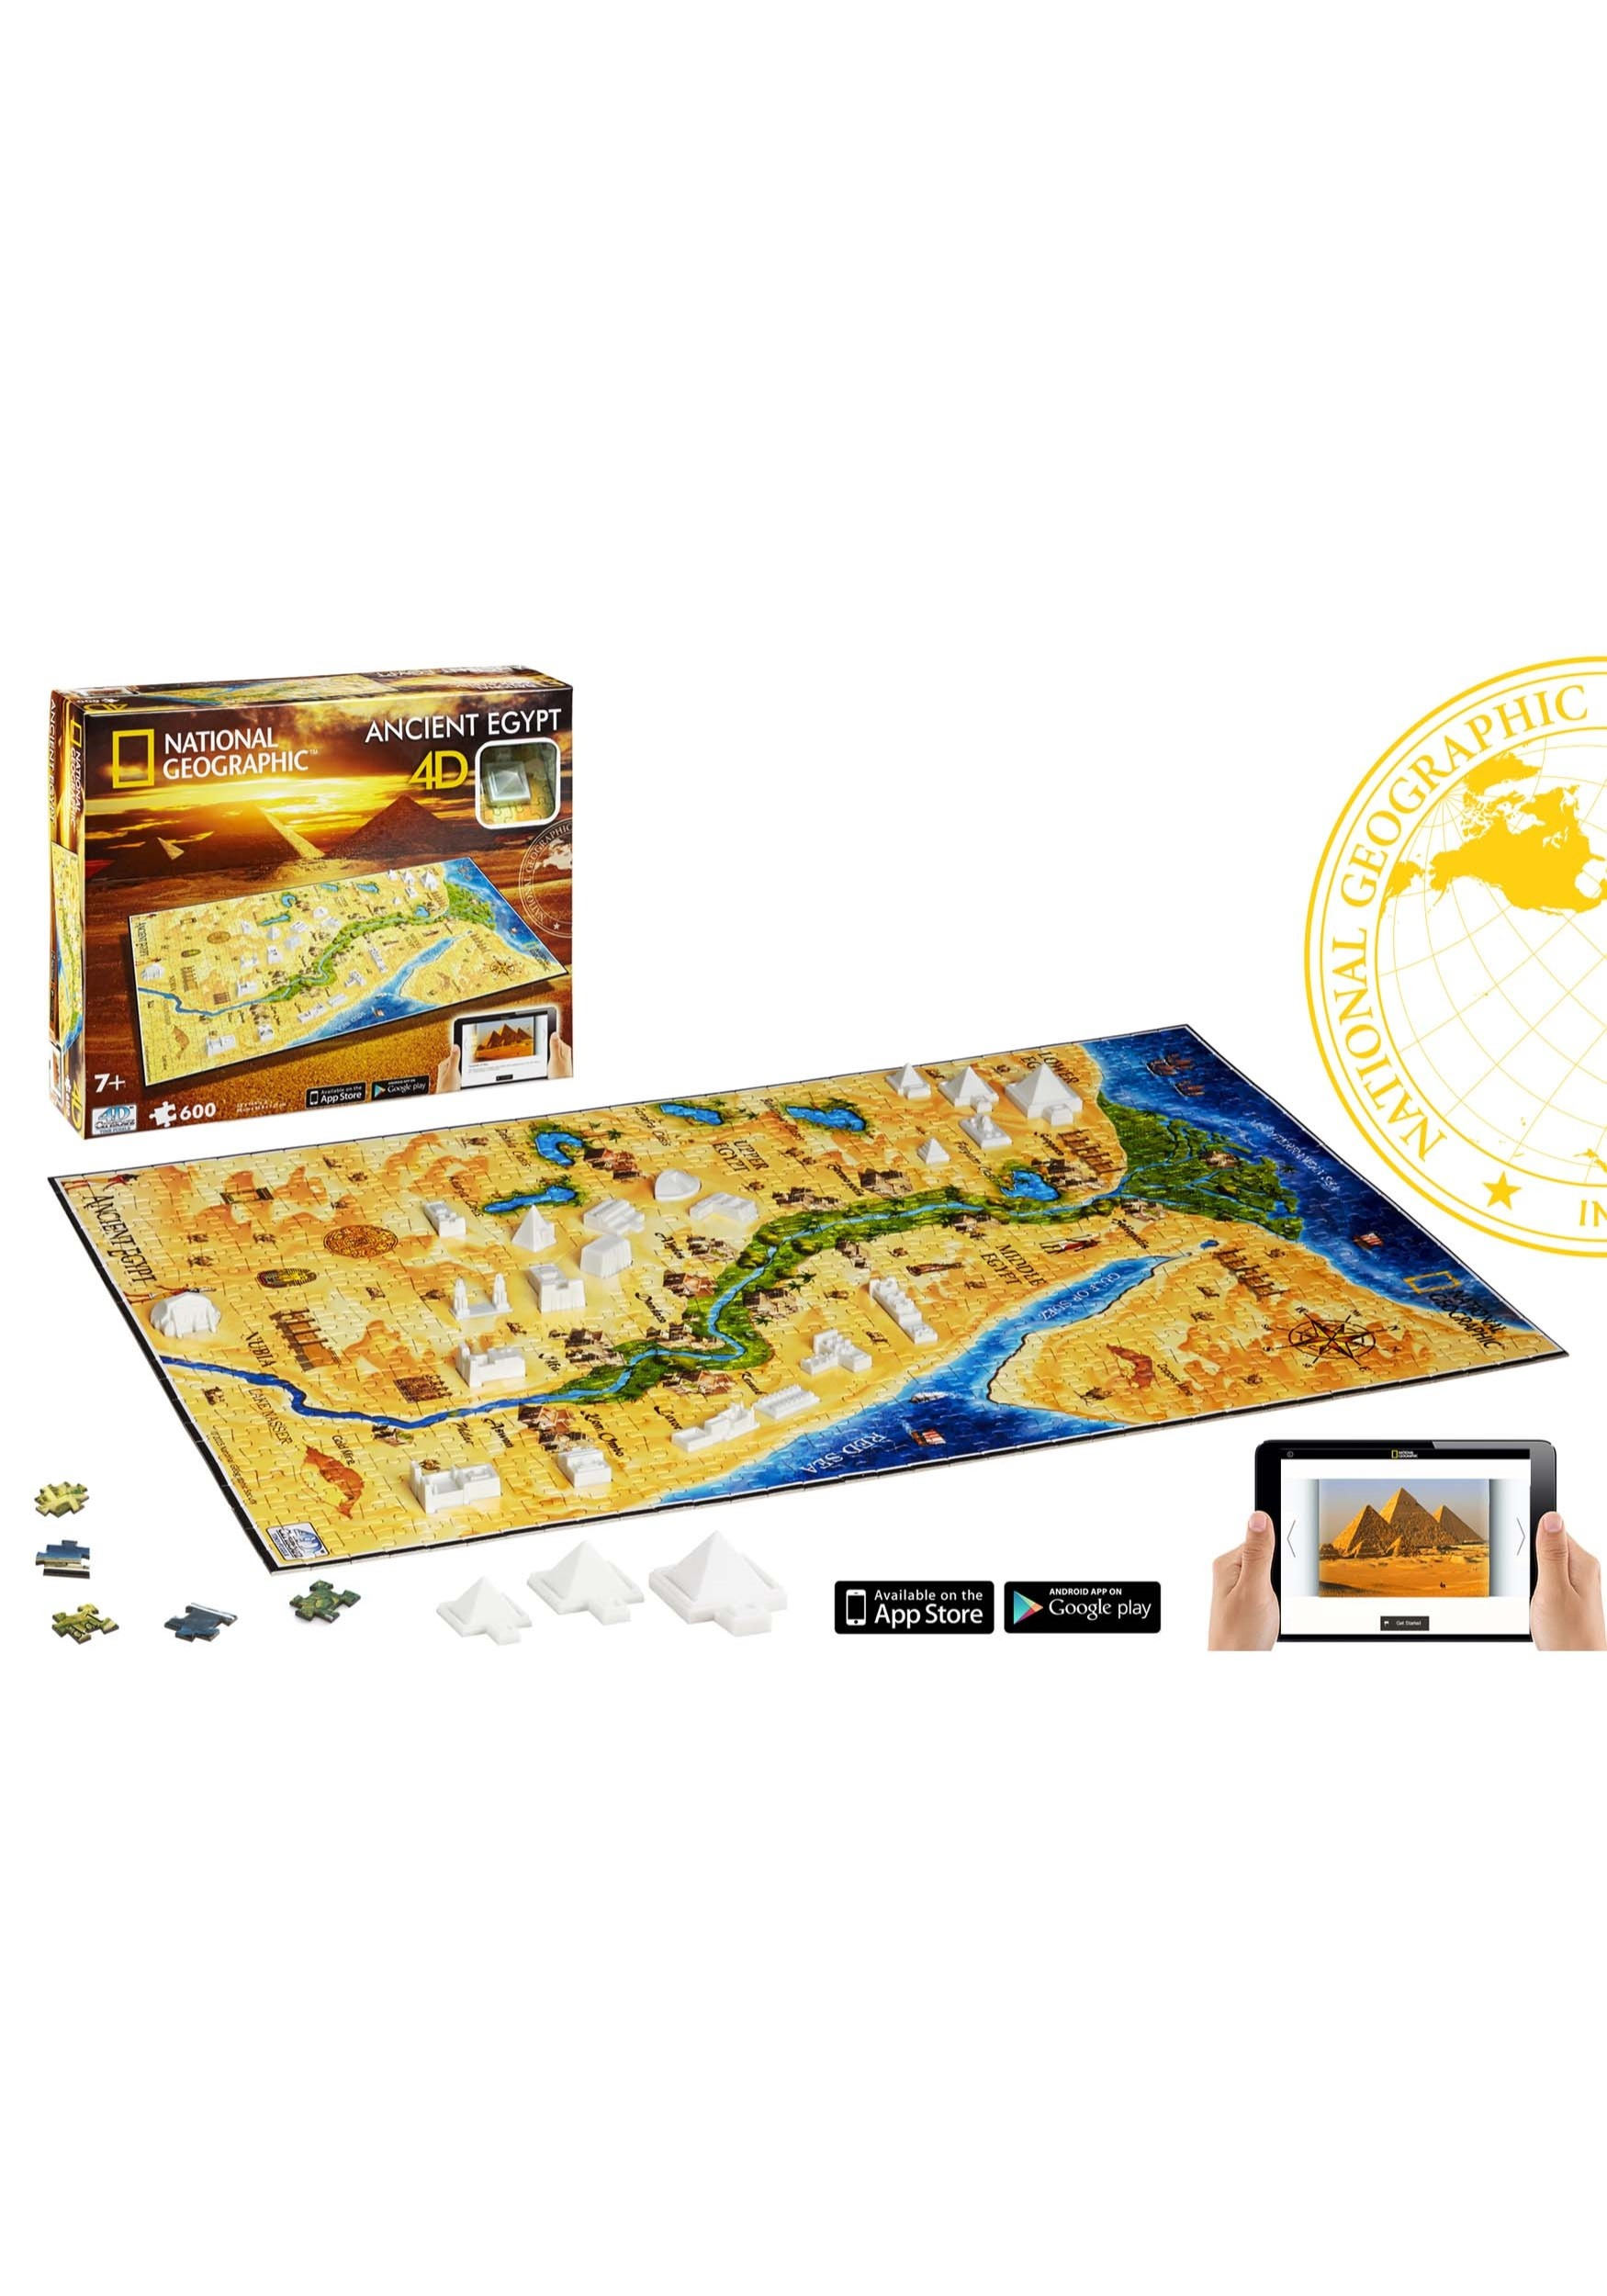 Ancient Egypt National Geographic 3d Puzzle